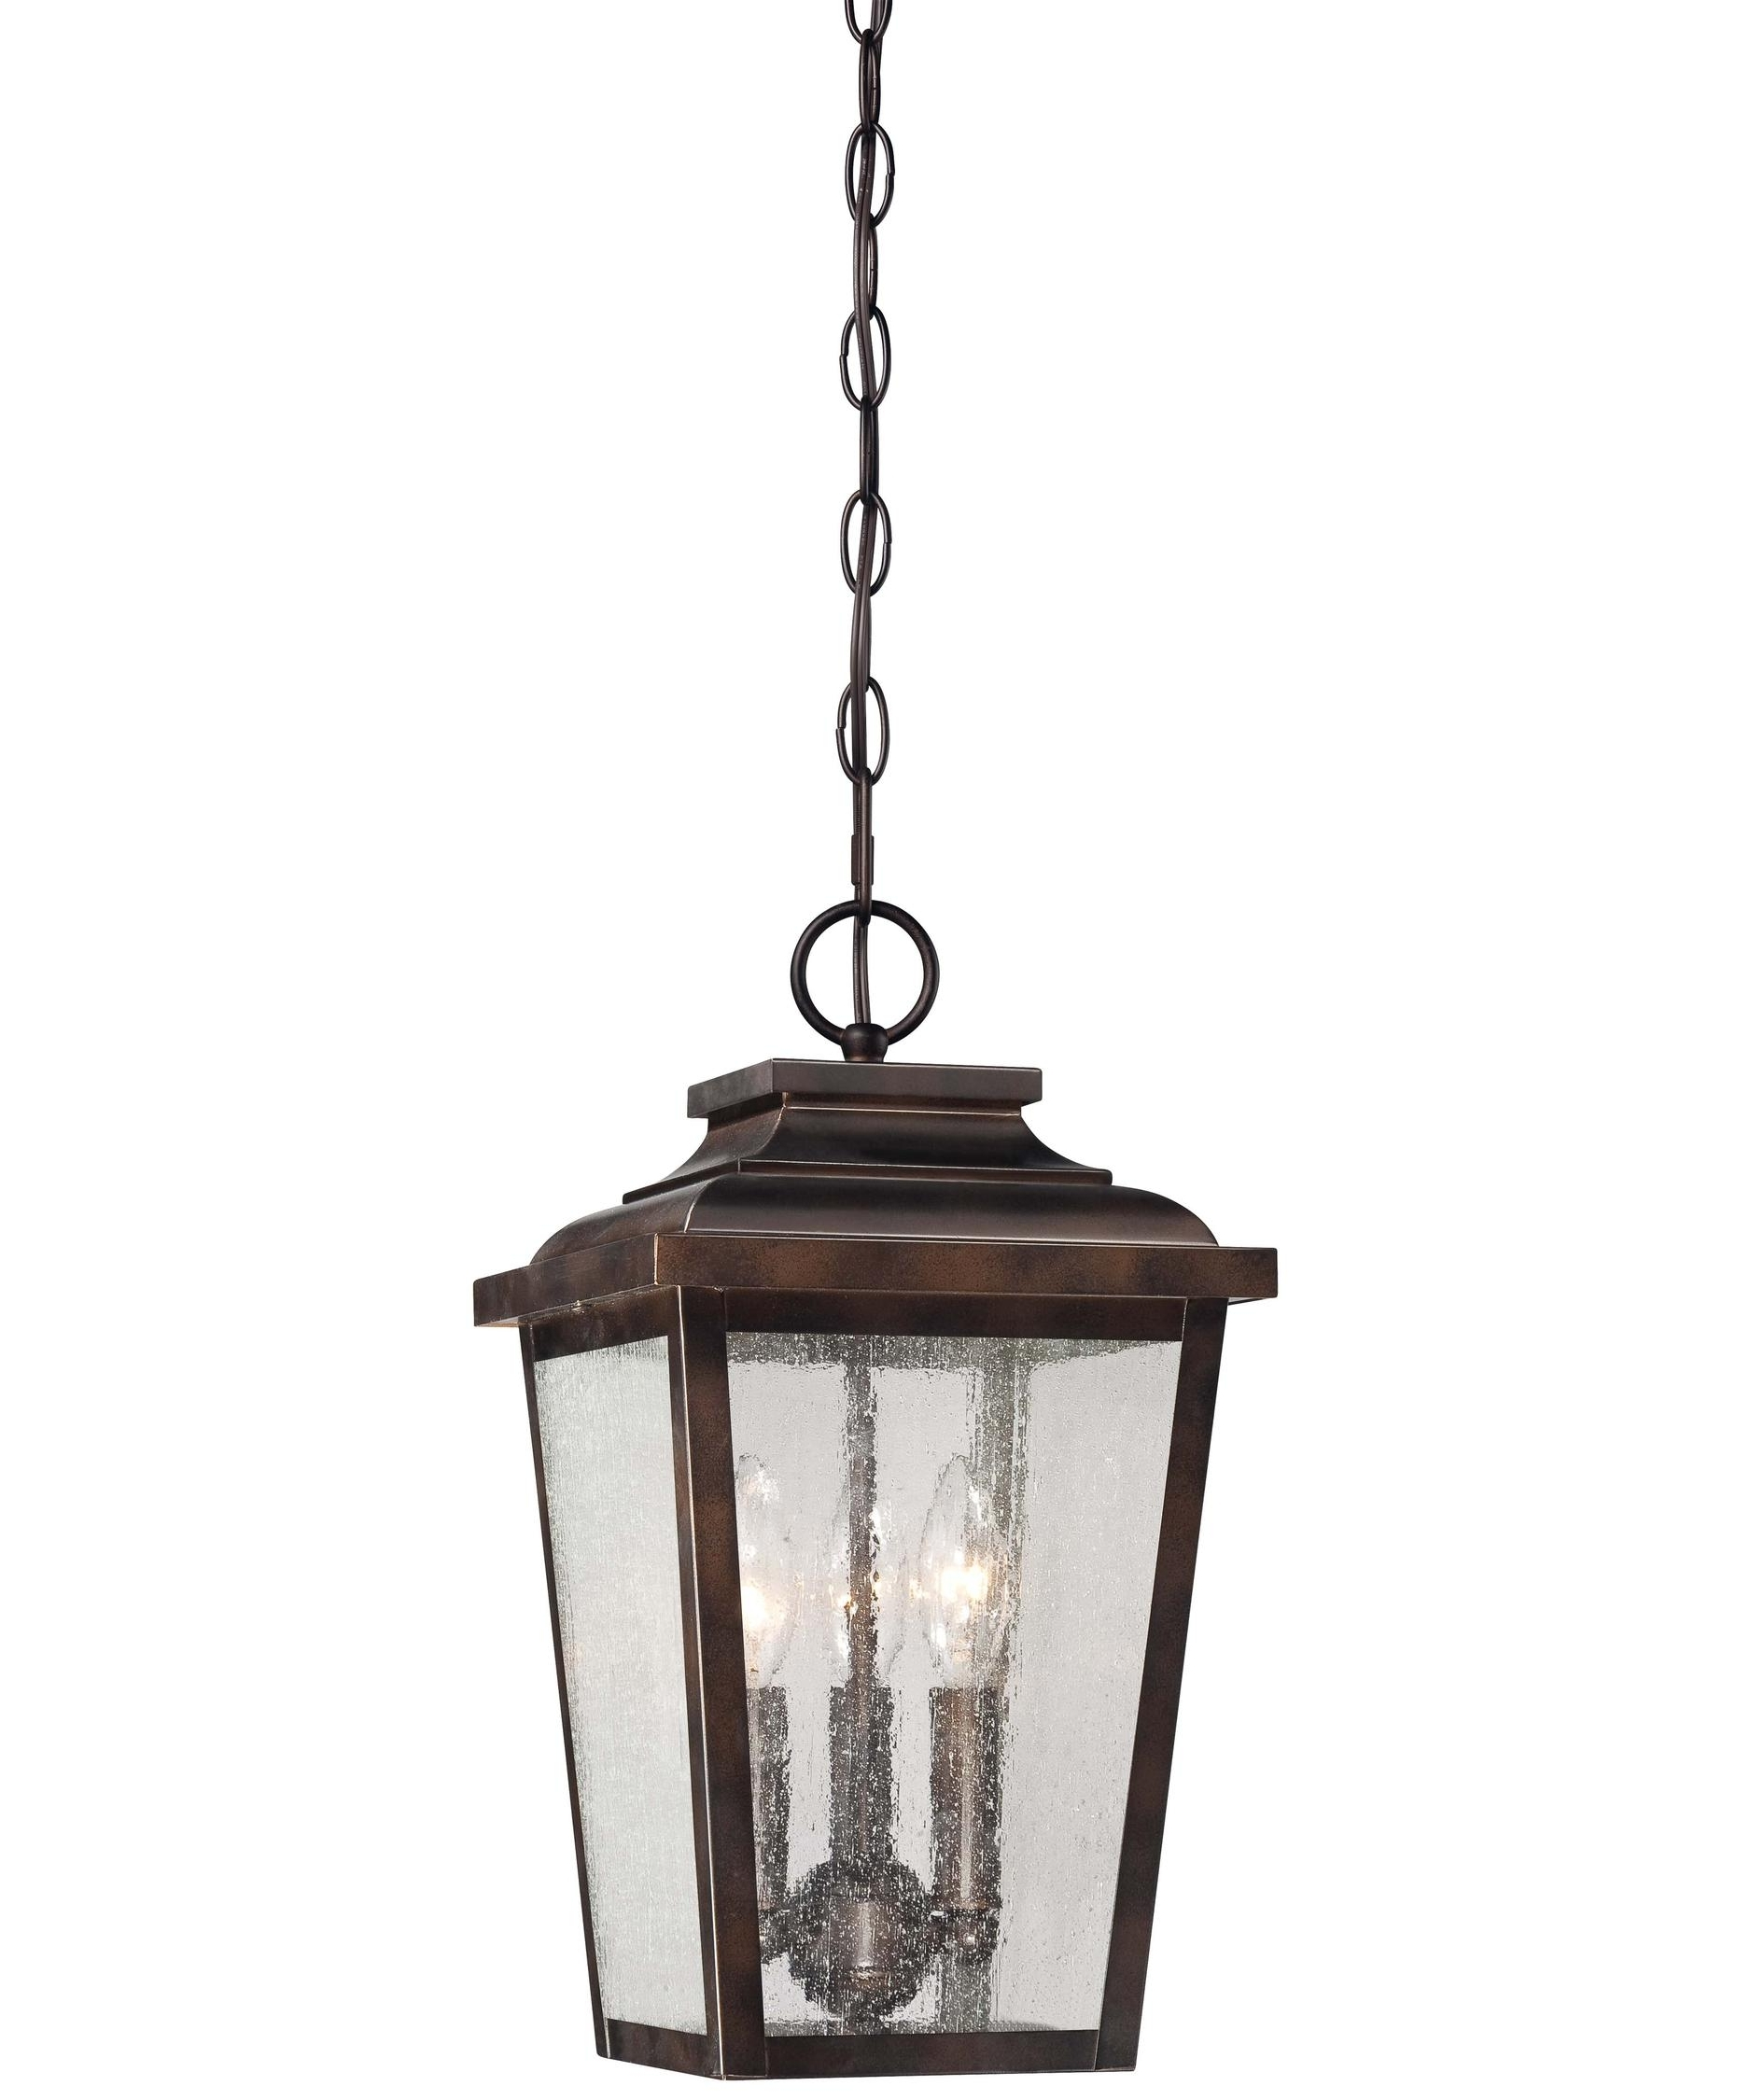 Minka Lavery 72174 Irvington Manor 9 Inch Wide 3 Light Outdoor Within Most Current Outdoor Lanterns For Front Porch (View 19 of 20)